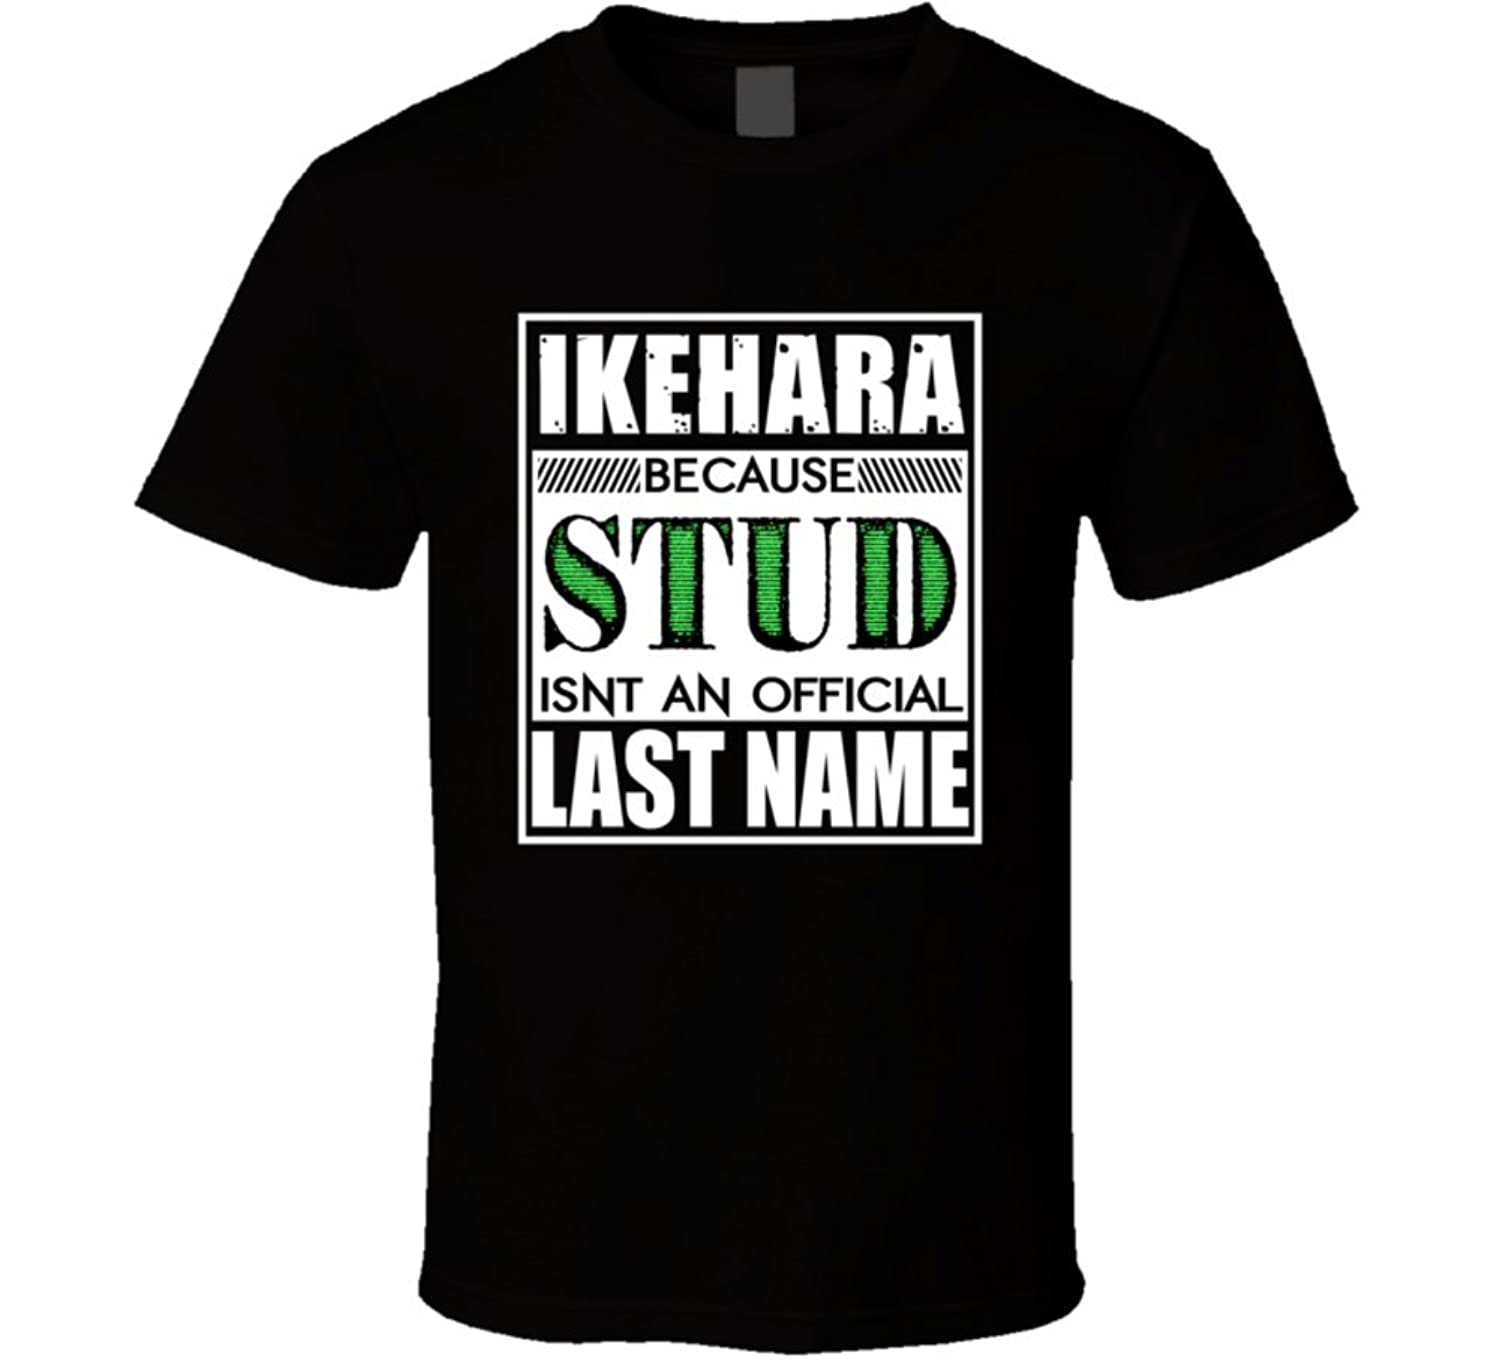 Ikehara Because Stud official Last Name Funny T Shirt